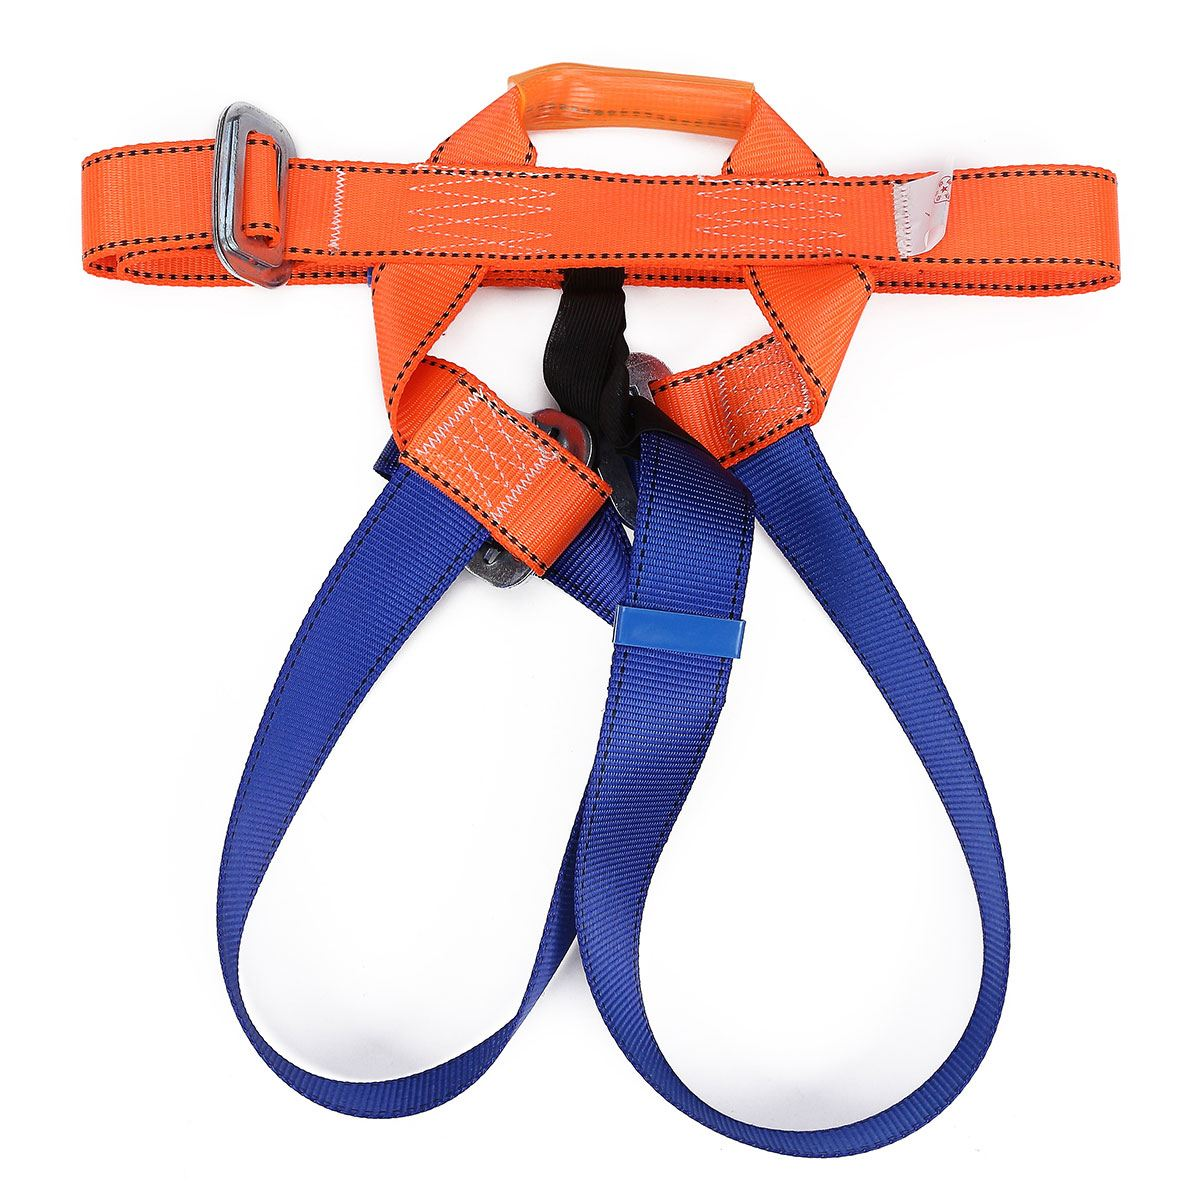 Safurance Climbing Harness belt equipment Workplace Safety